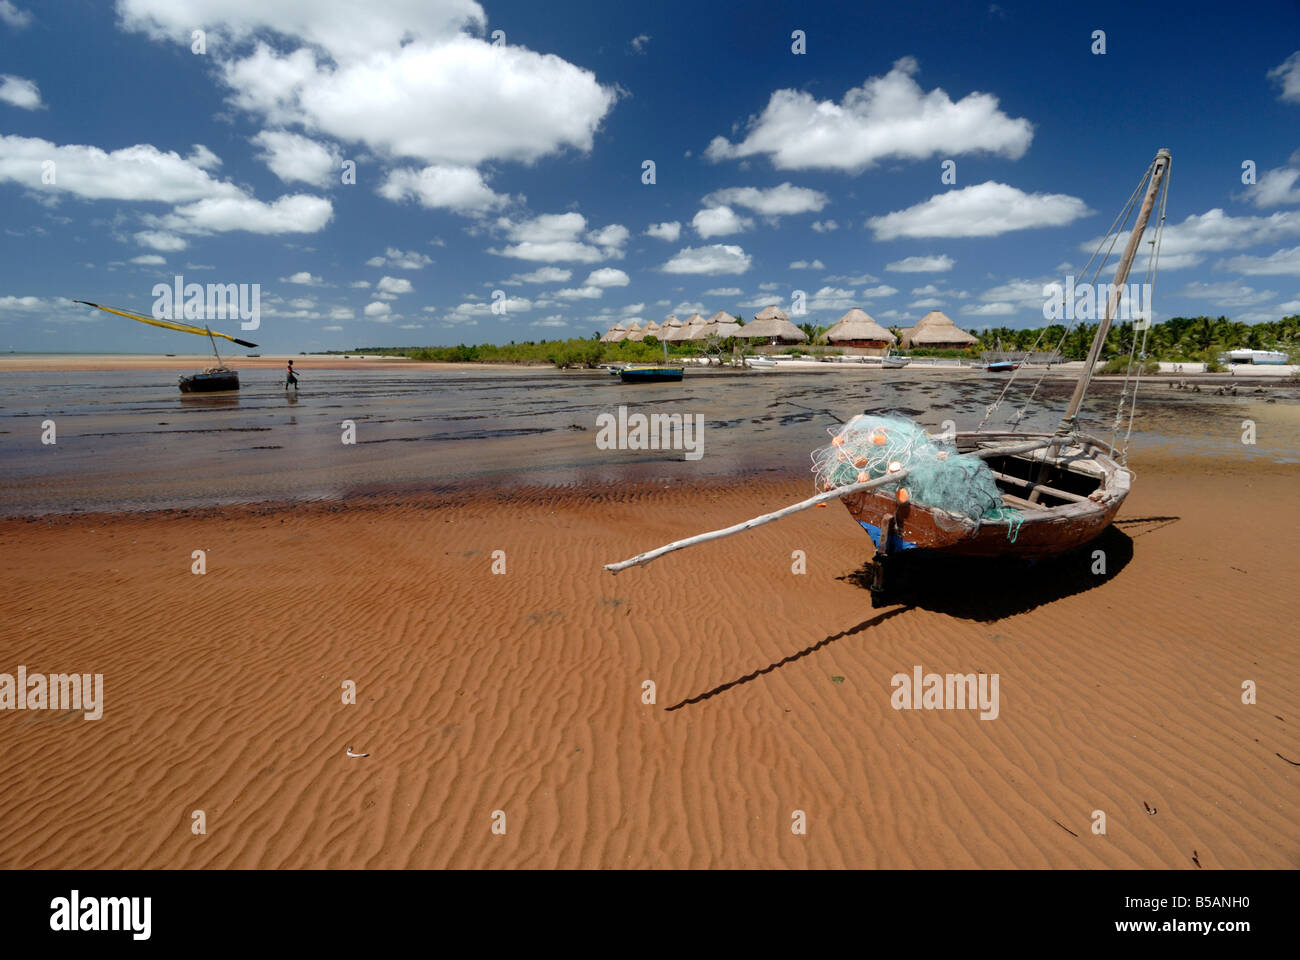 Resort, Vilanculo Beach, Mozambique, East Africa, Africa - Stock Image